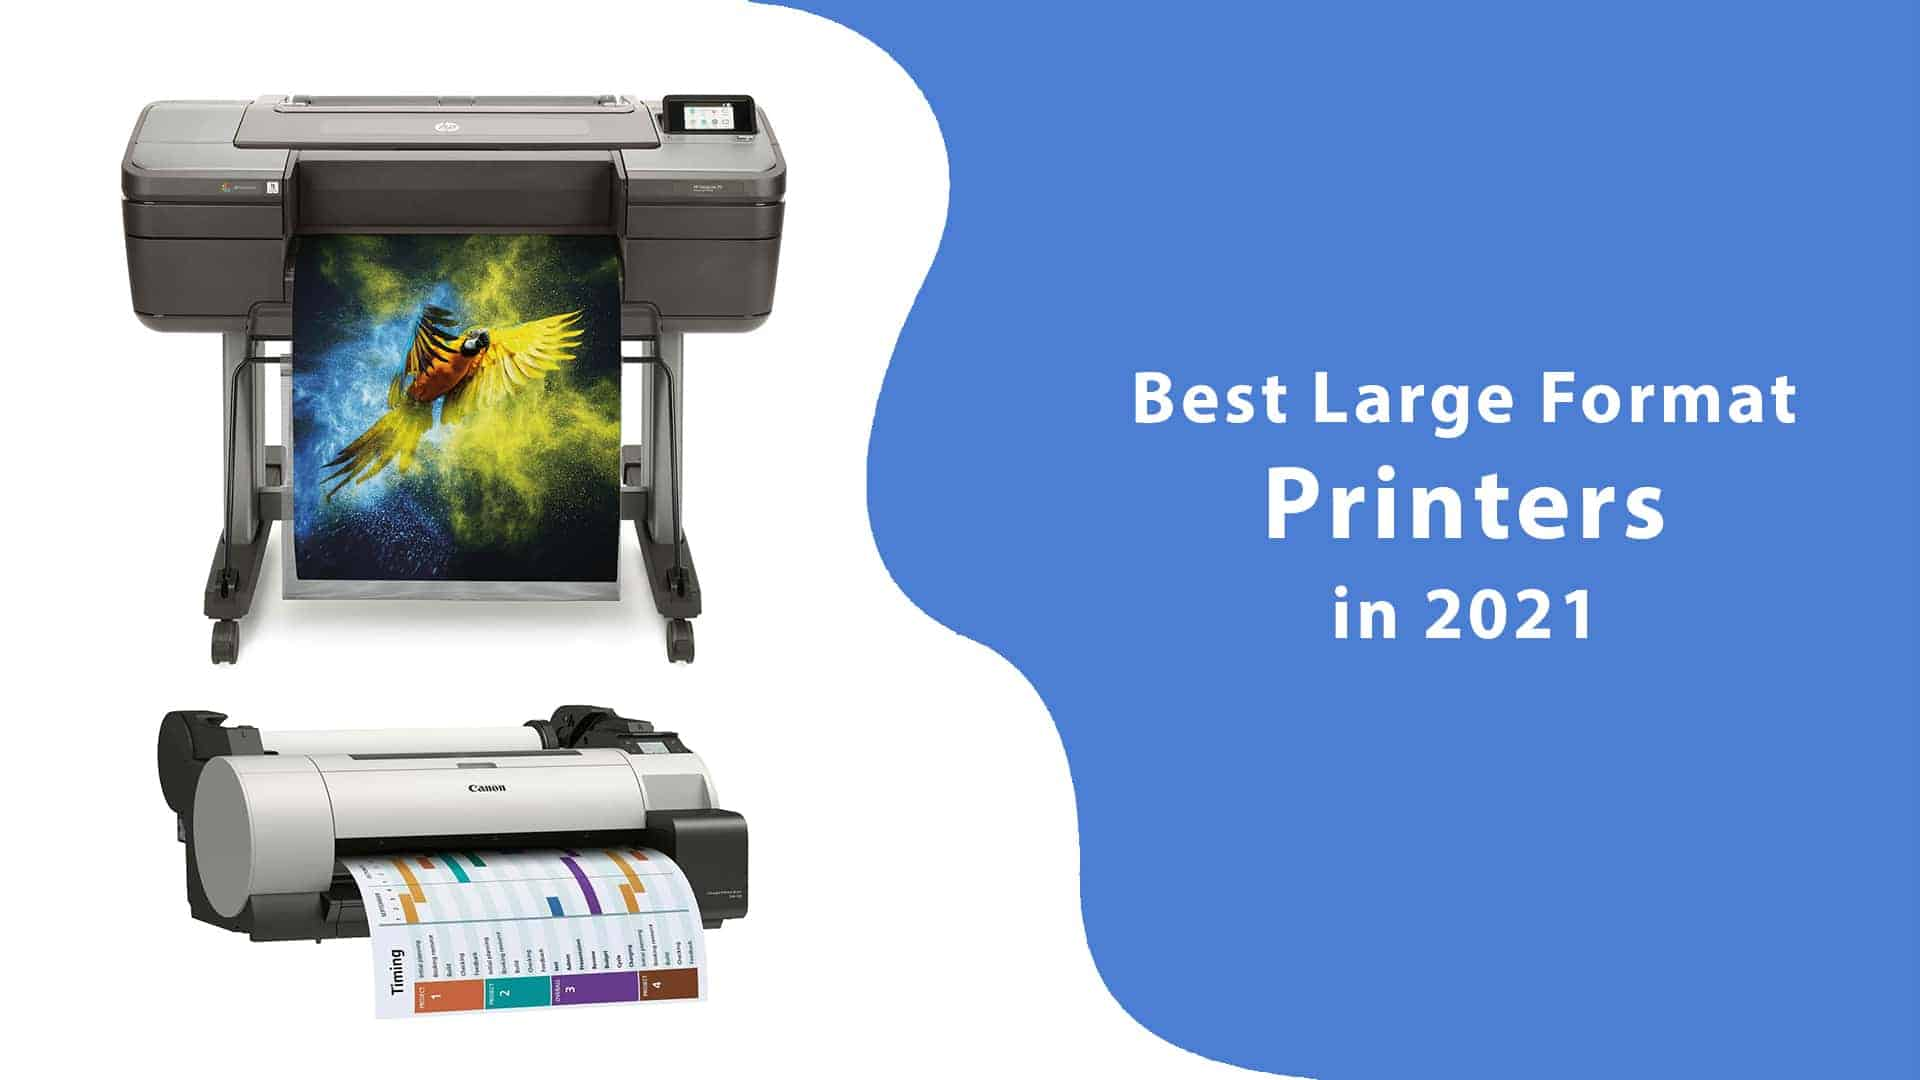 Best Large Format Printers in 2021